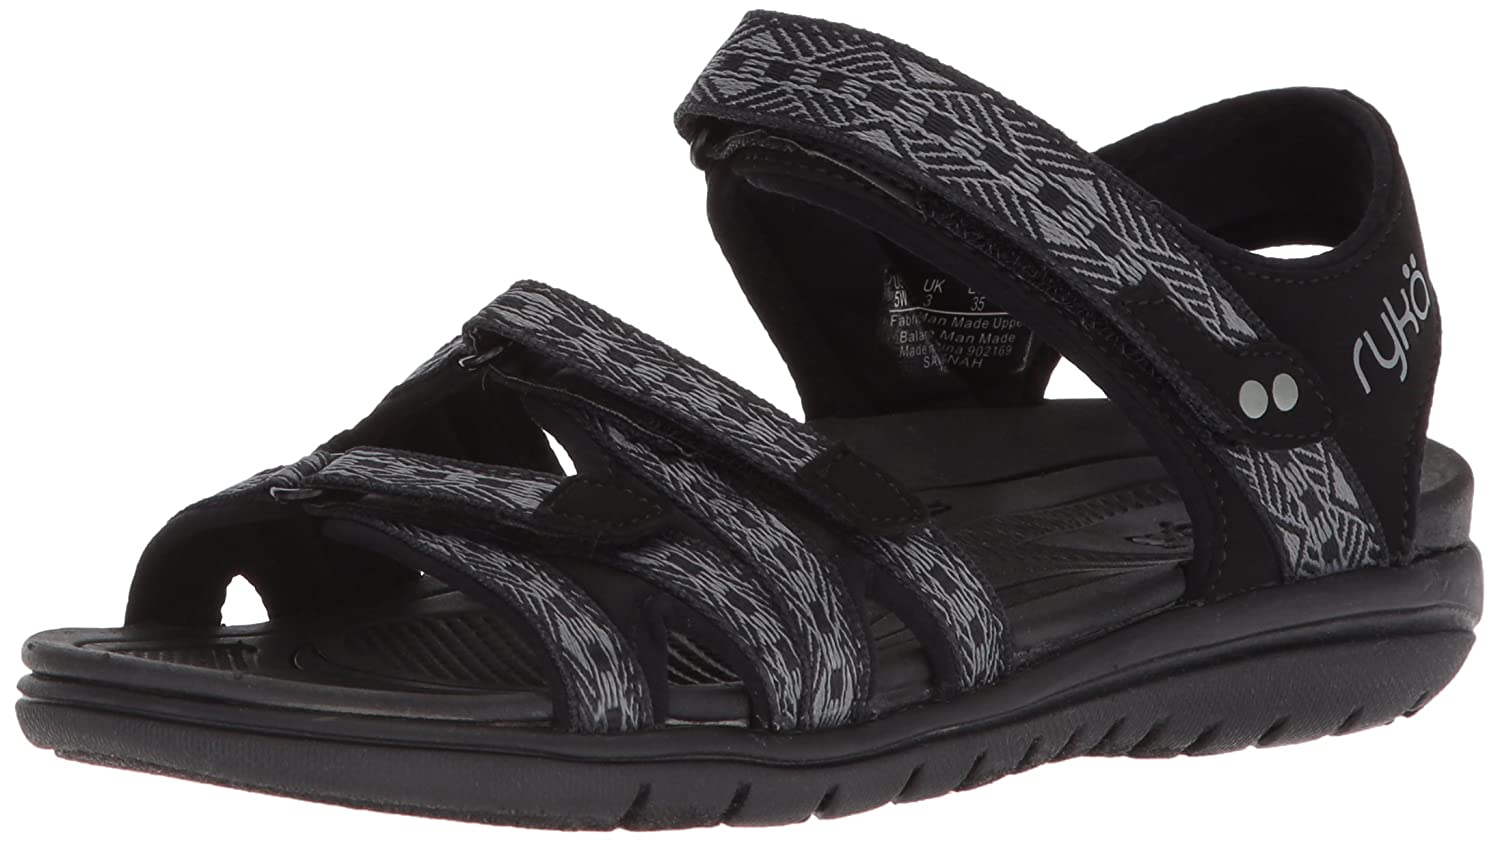 Ryka Women's Savannah Sandal B01KWH5WGM 9 B(M) US|Black/Grey